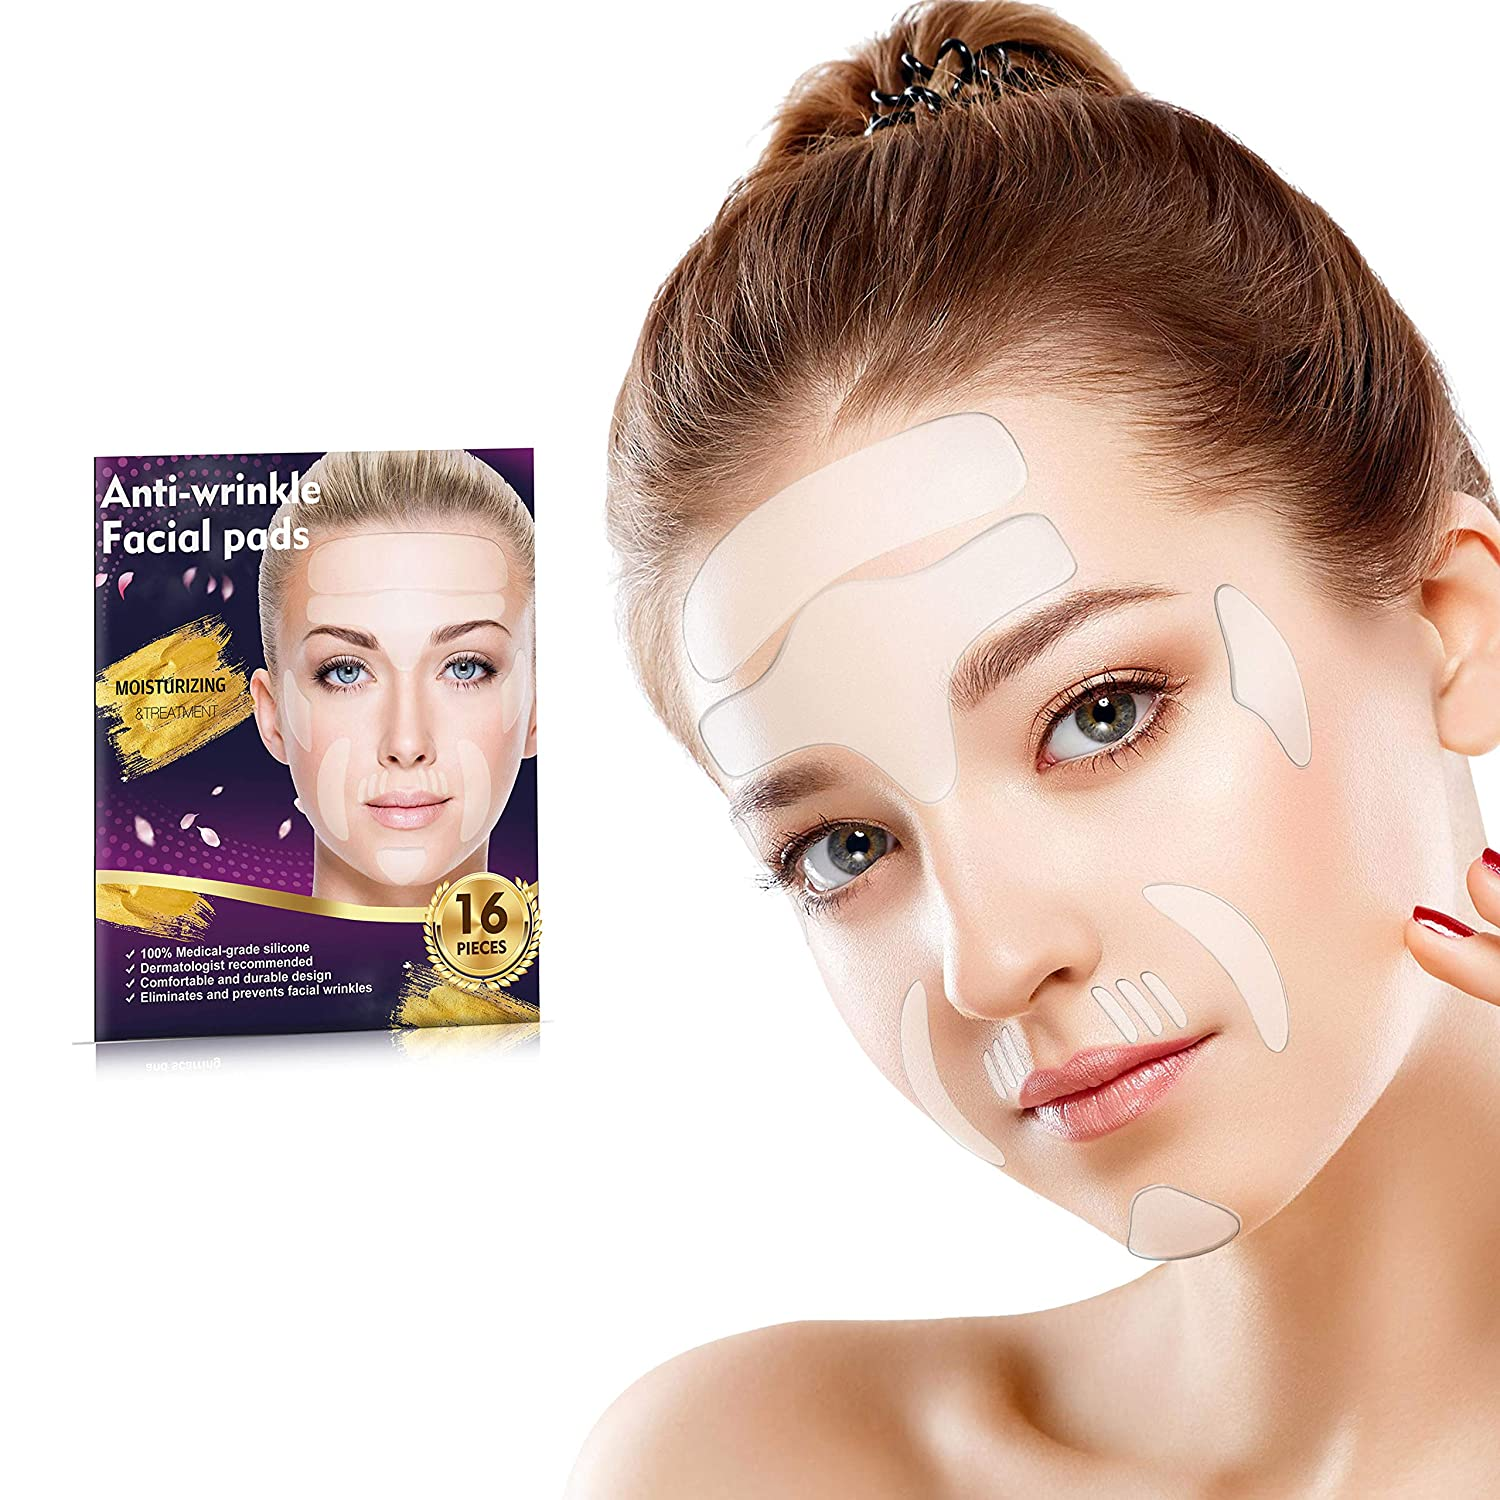 16 Pieces Face Wrinkle Patches, Reusable Anti Wrinkle Pads for Face, Reducing and Smoothing Wrinkles Around Forehead, Eye, Mouth & Upper Lip: Beauty